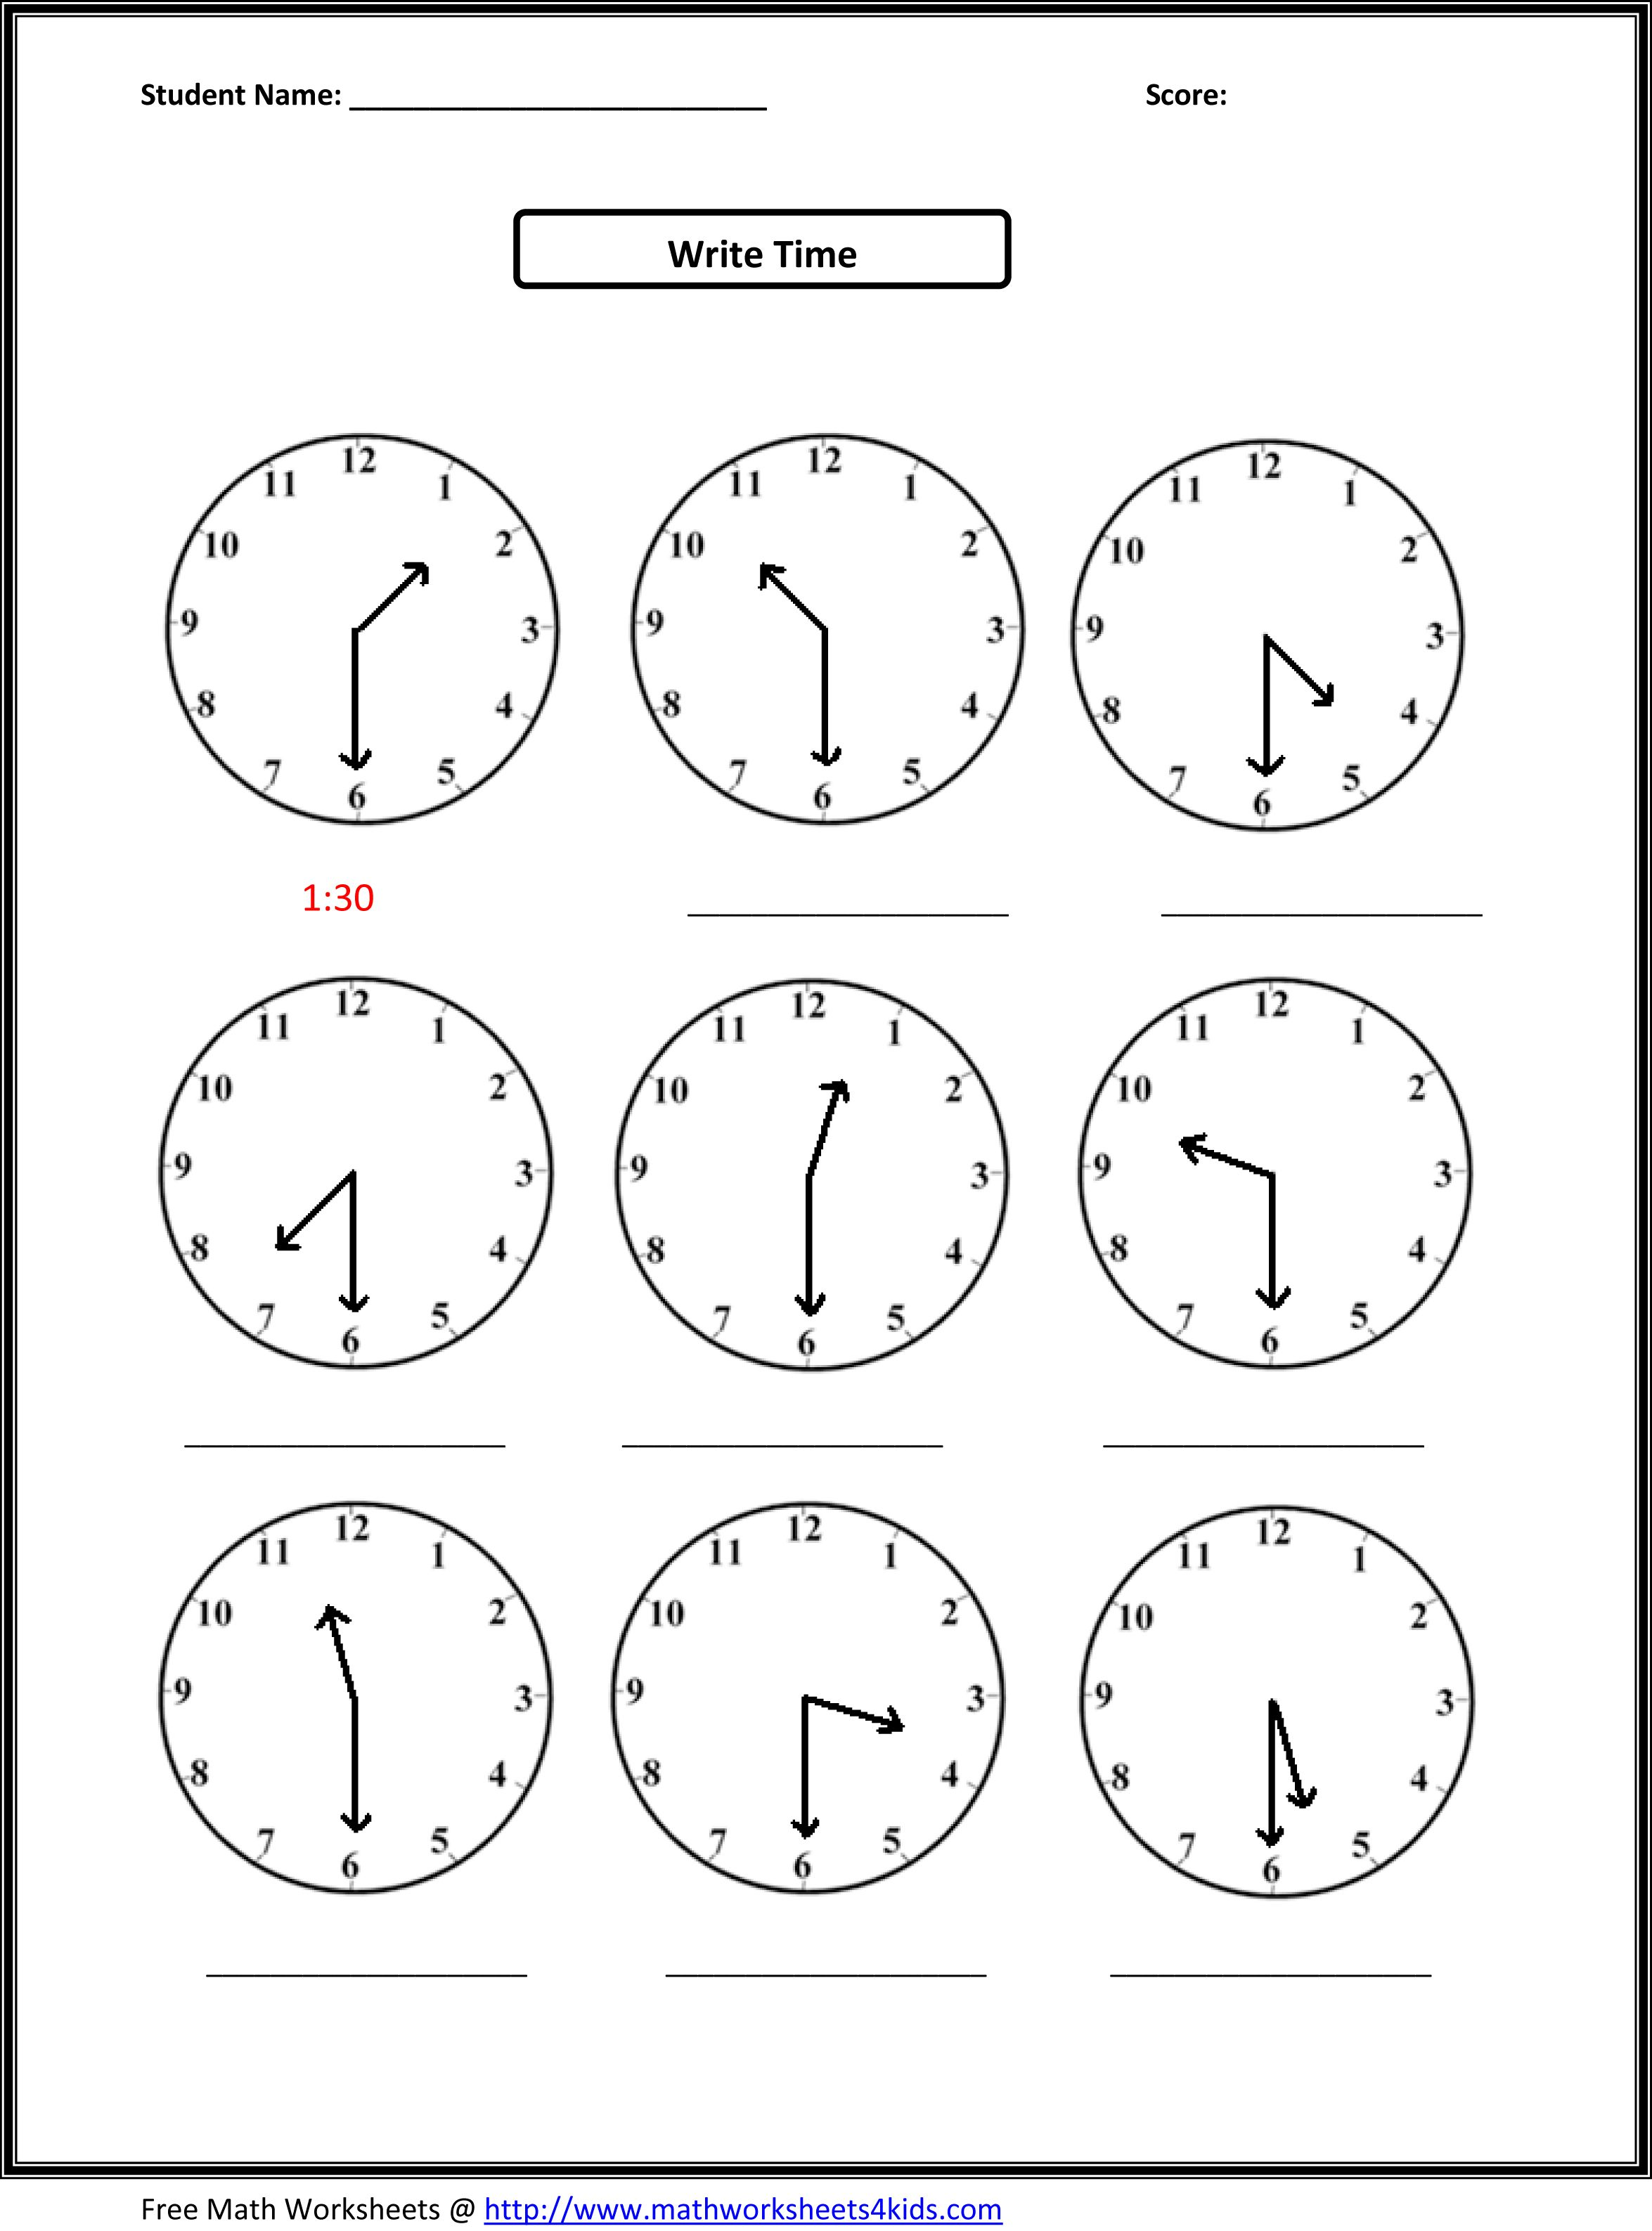 Weirdmailus  Marvelous Worksheet On Time For Grade   Reocurent With Hot Free Printable Telling Time Worksheets Nd Grade  Reocurent With Attractive Homeschoolmath Net Free Worksheets Also Percentage Composition Worksheet Answers In Addition Pearson Education Worksheets And Mean Median Mode Worksheet As Well As Atoms And Ions Worksheet Answer Key Additionally Irony Worksheet From Reocurentcom With Weirdmailus  Hot Worksheet On Time For Grade   Reocurent With Attractive Free Printable Telling Time Worksheets Nd Grade  Reocurent And Marvelous Homeschoolmath Net Free Worksheets Also Percentage Composition Worksheet Answers In Addition Pearson Education Worksheets From Reocurentcom